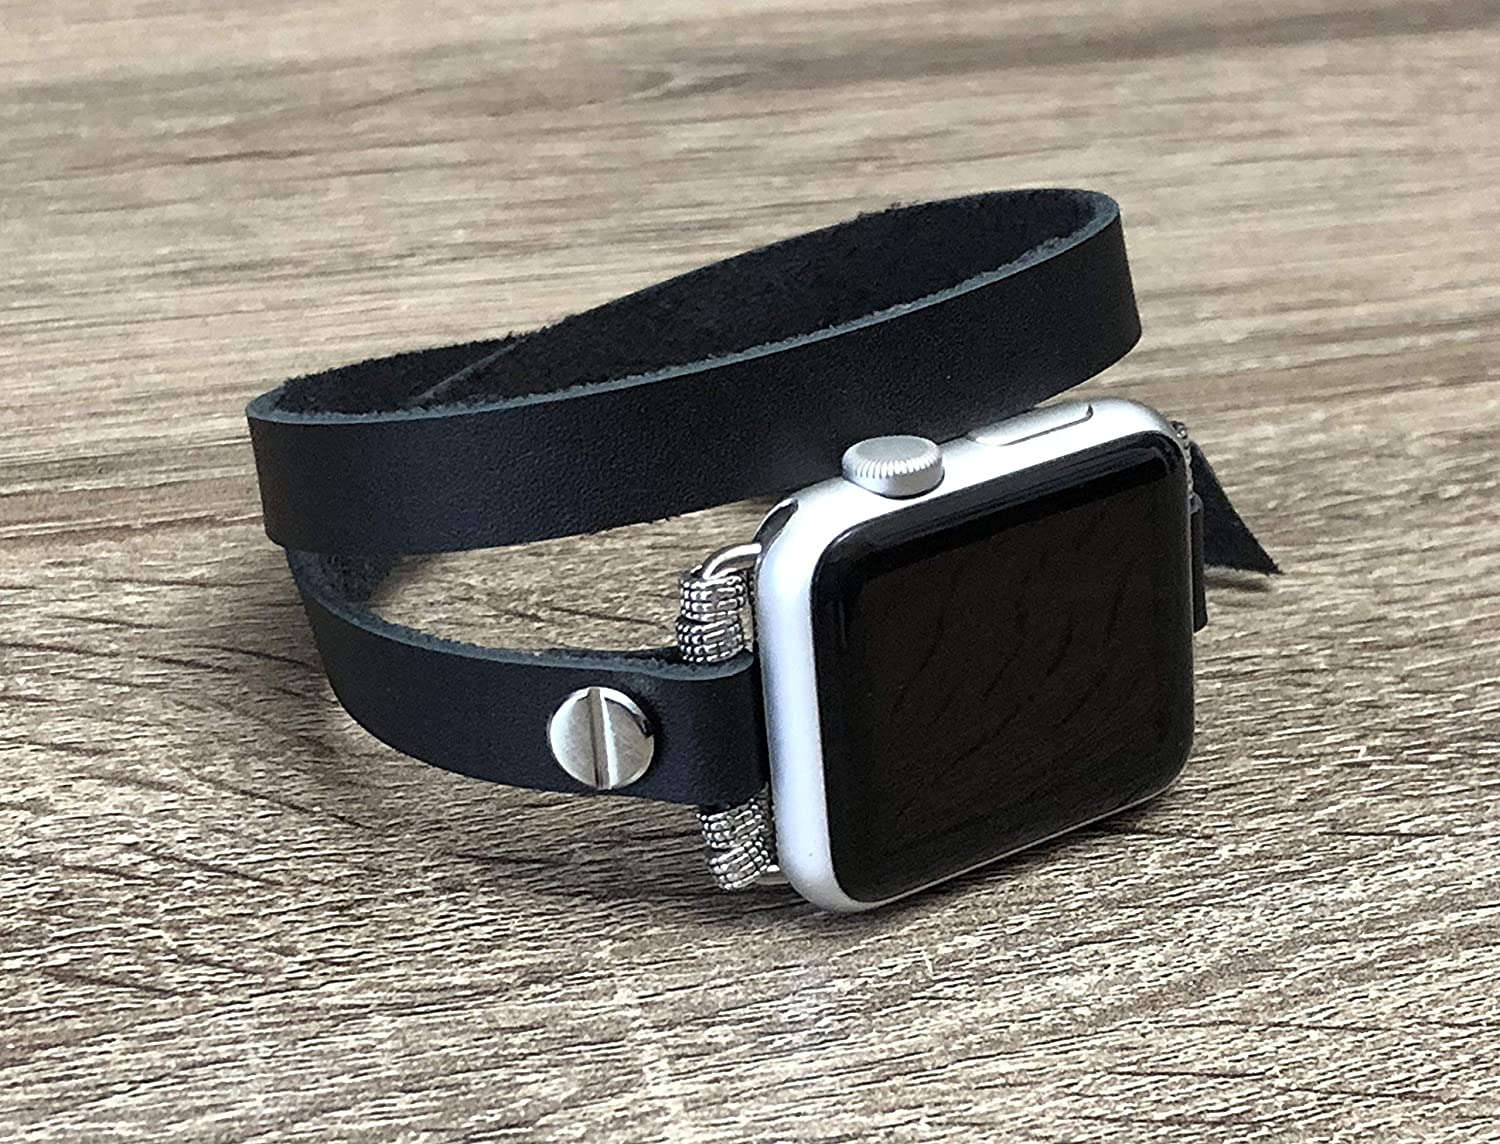 B07F7QCQ7N Black Leather Bracelet For Apple Watch 38mm 40mm 42mm 44mm Series 5 4 3 2 1 Handcrafted Double Wrap iWatch Band Adjustable Size Strap iWatch Bracelet Unisex Silver Jewelry Wristband 91wYd2BnPKHL